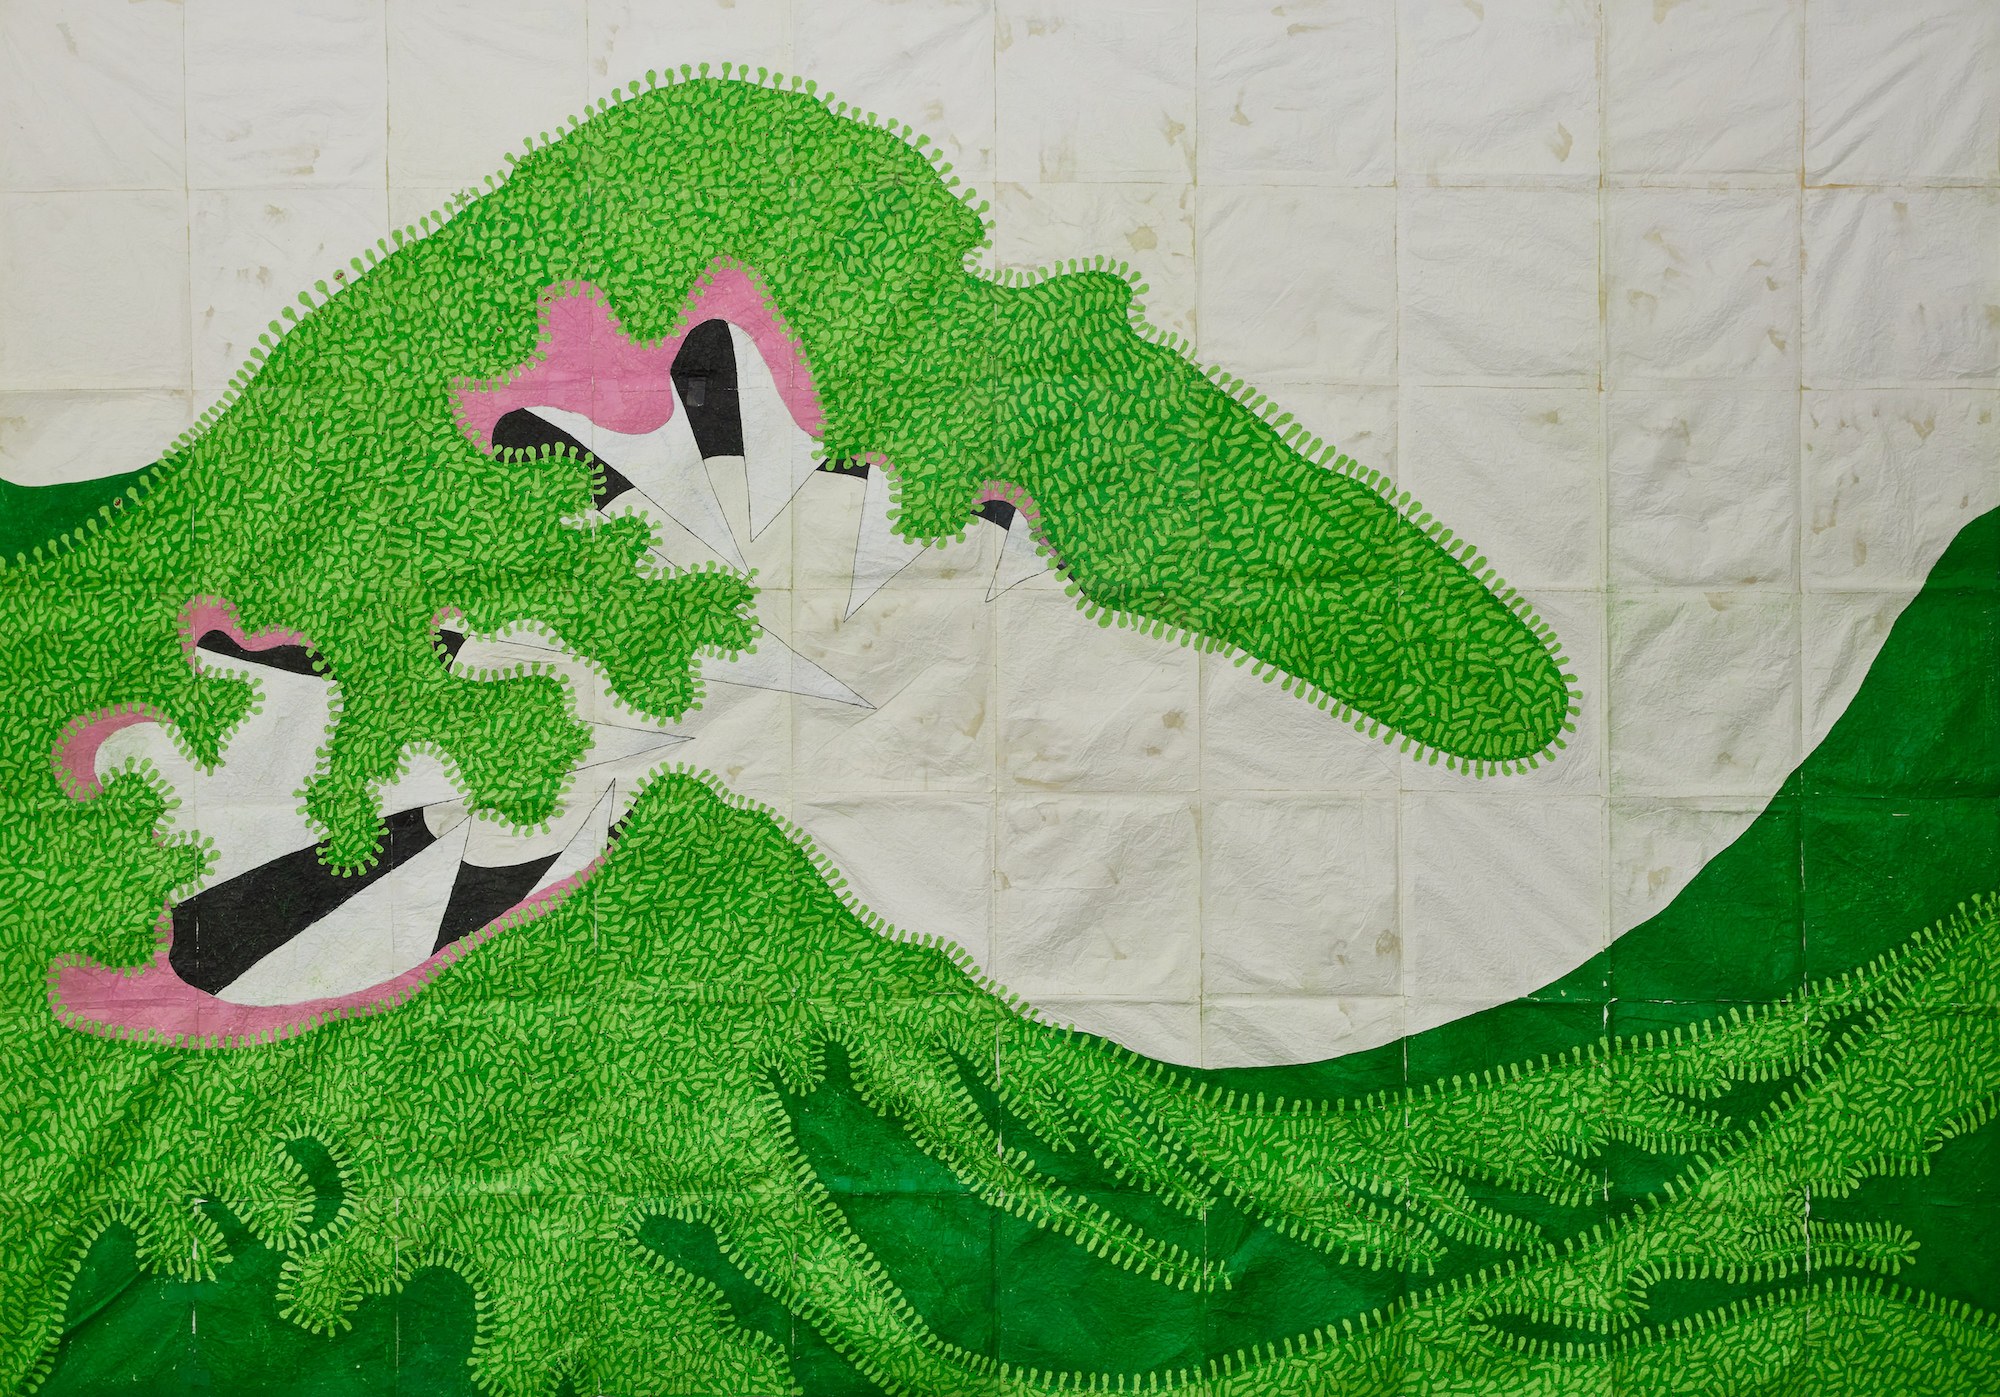 textile work of large green wave reflecting themes of pandemic